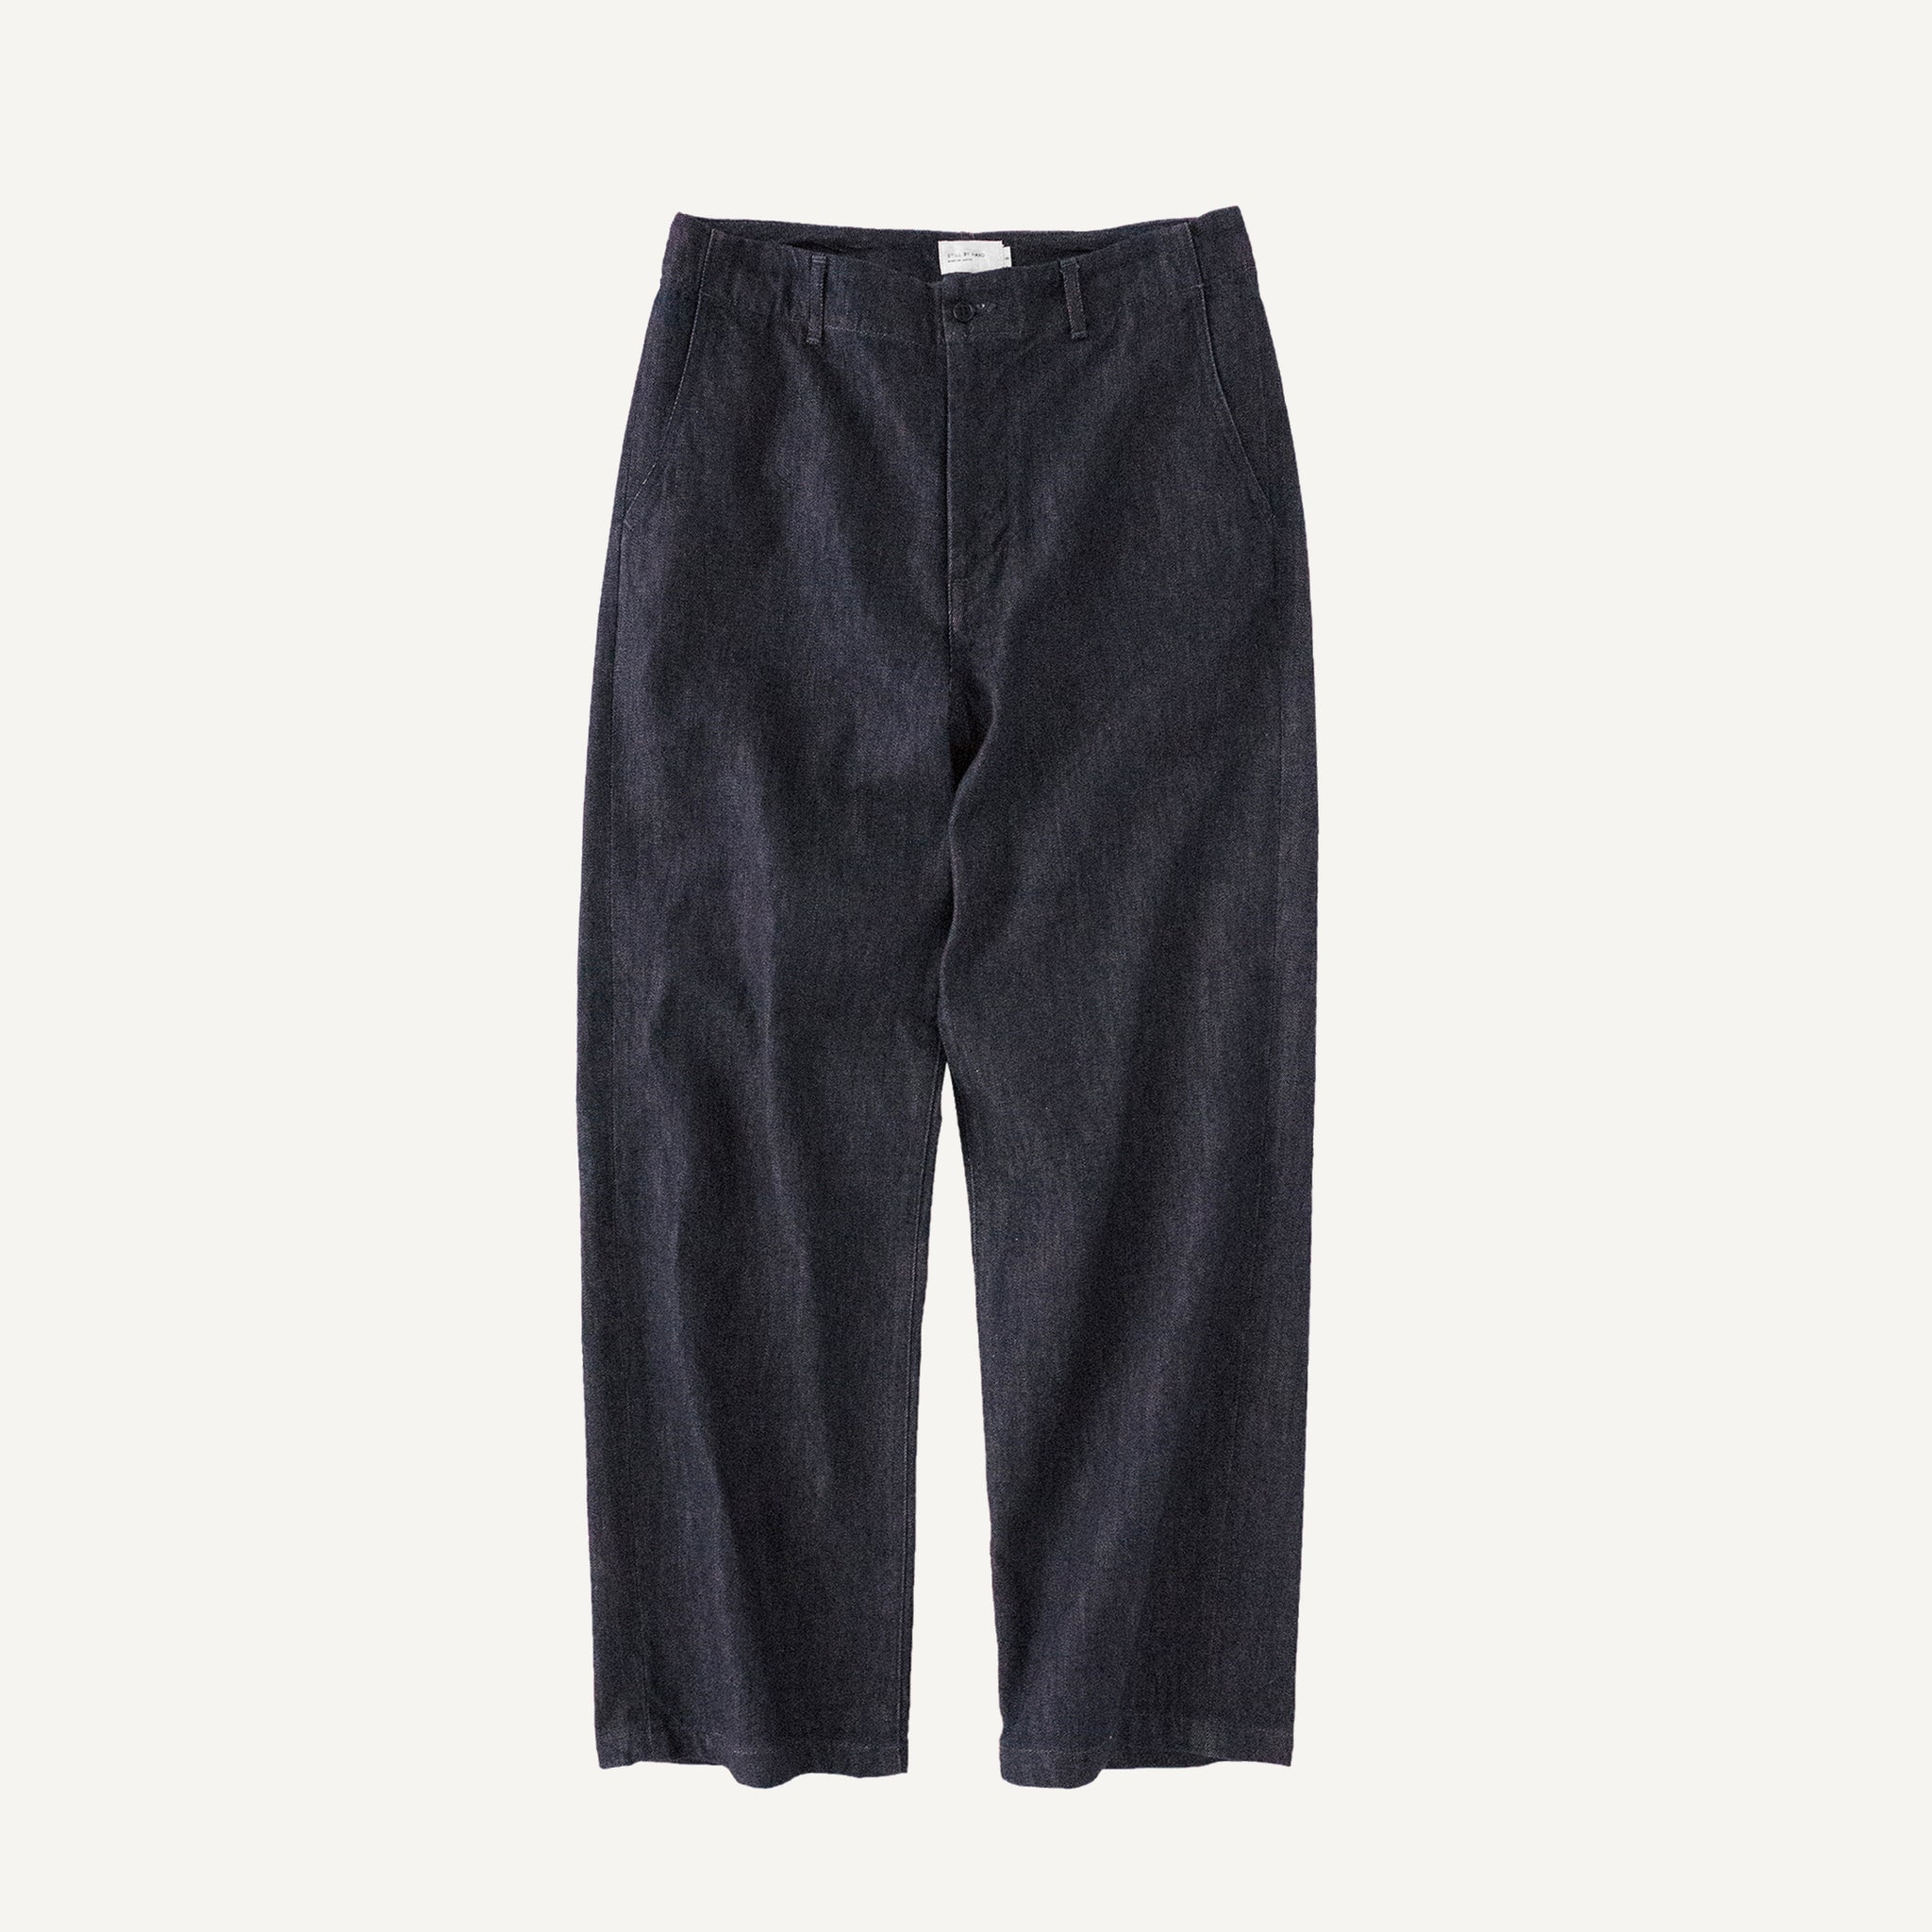 STILL BY HAND TWILL WEAVE PANTS